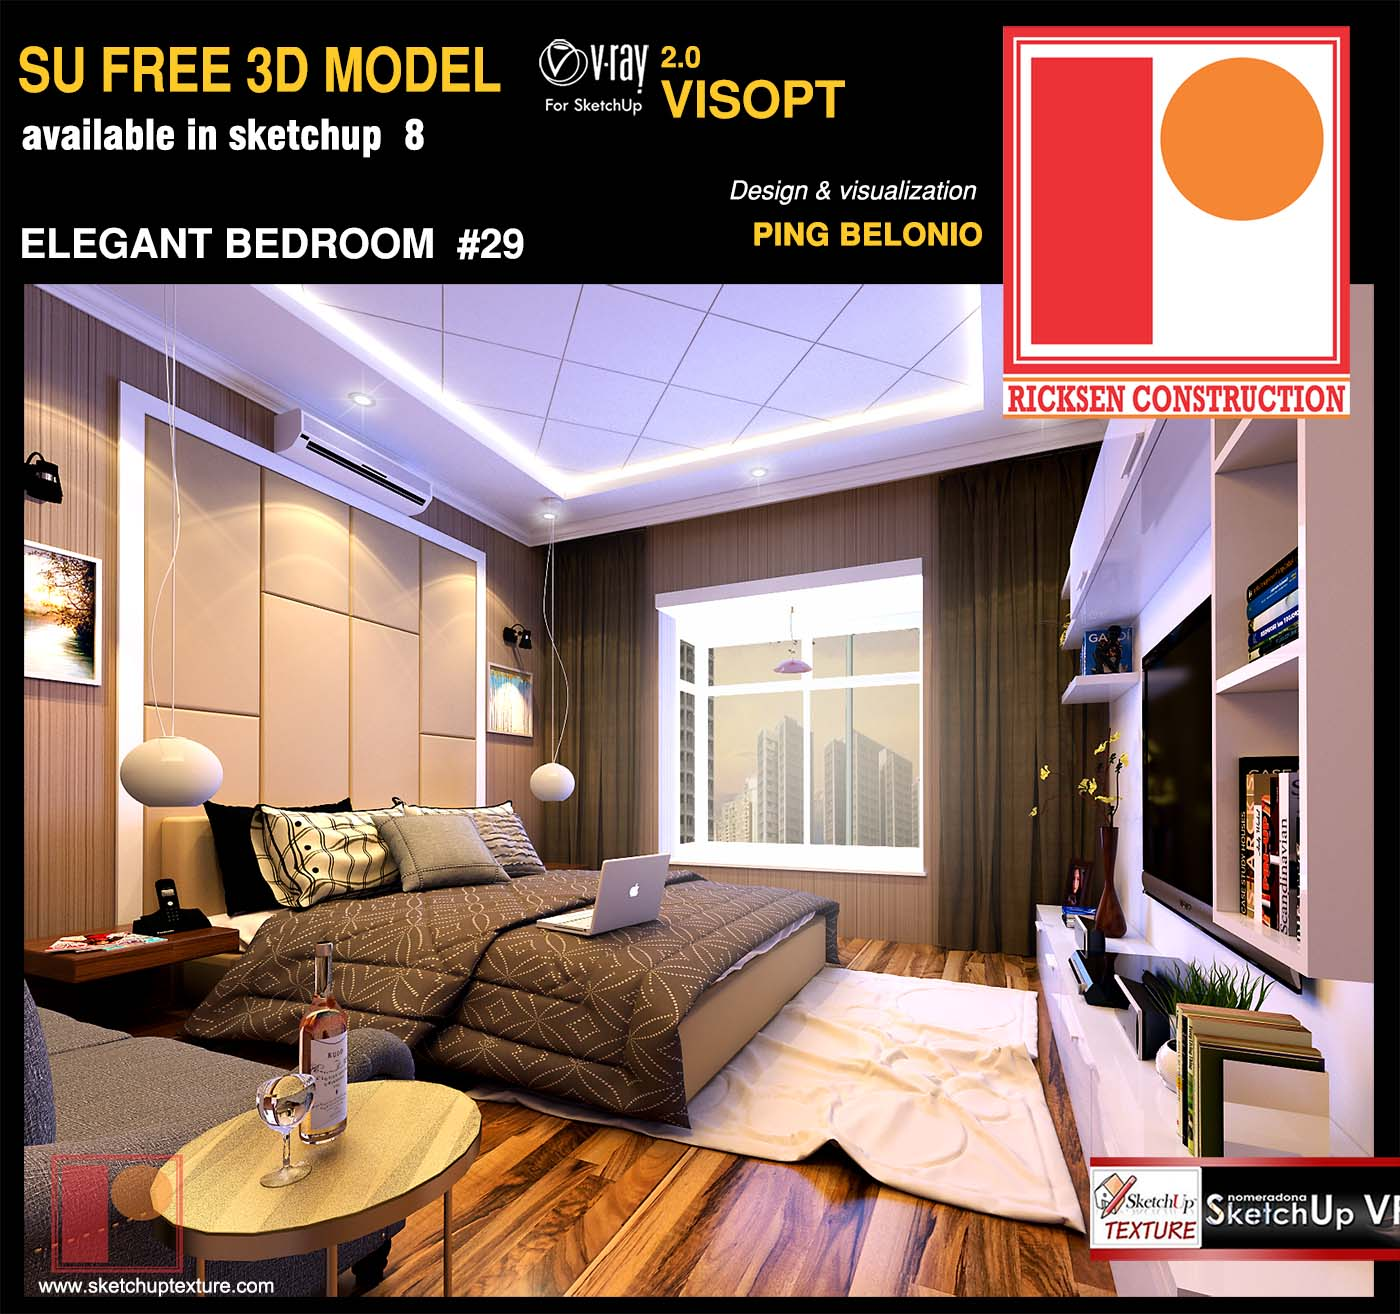 Sketchup texture free sketchup 3d model elegant bedroom for Bedroom designs 3d model